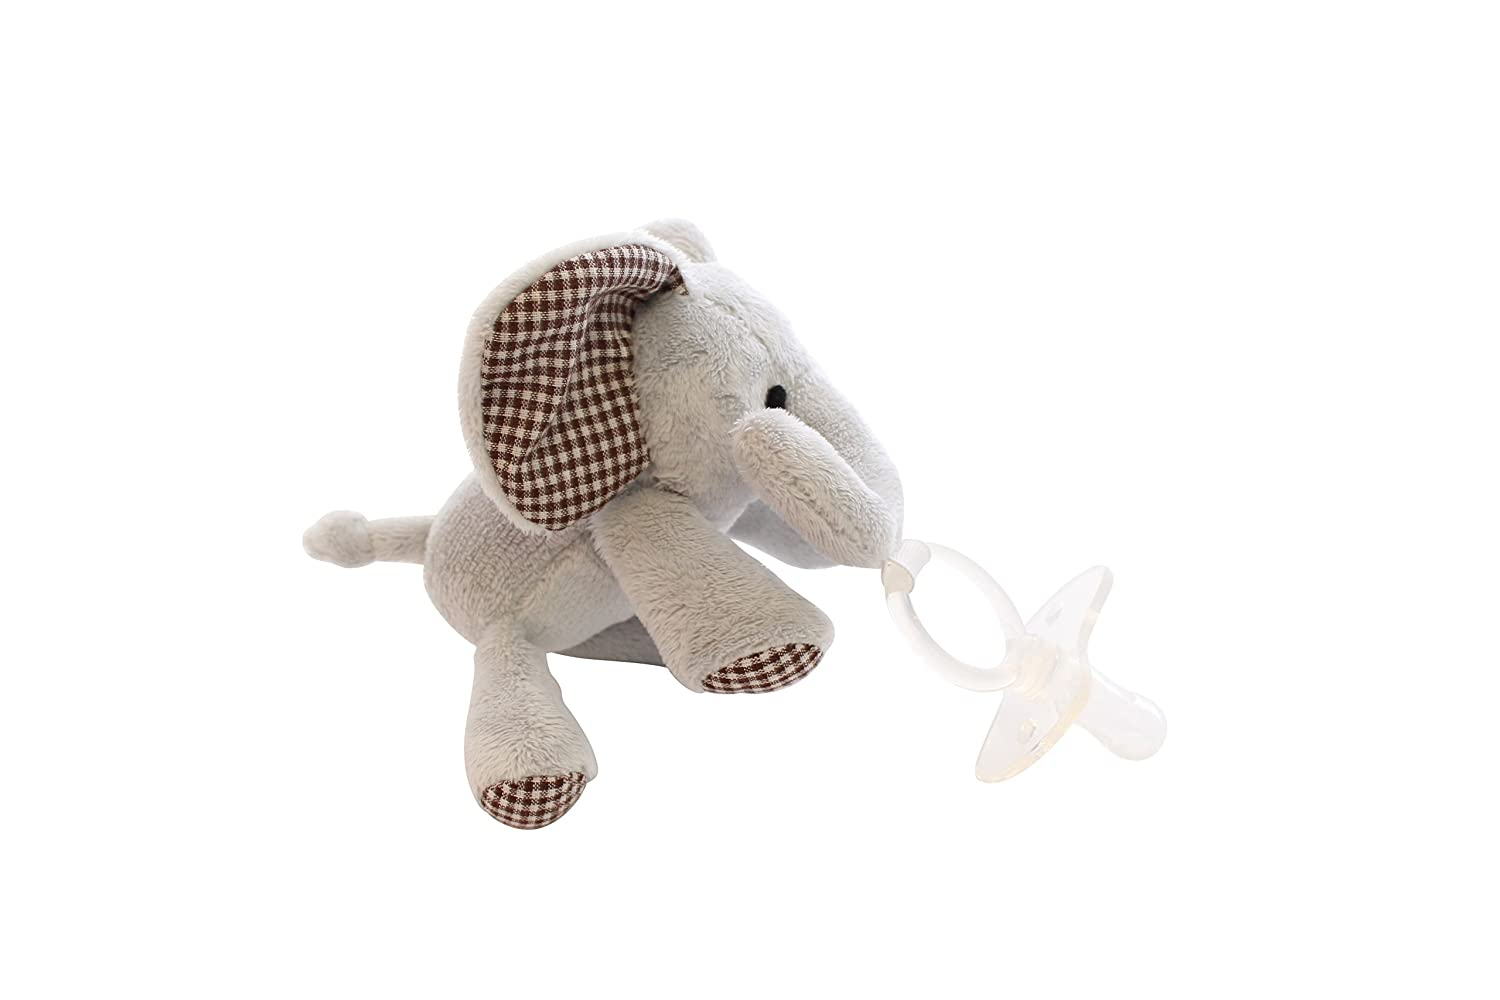 Amazon.com: Chupete con animal de peluche plush Eli ...